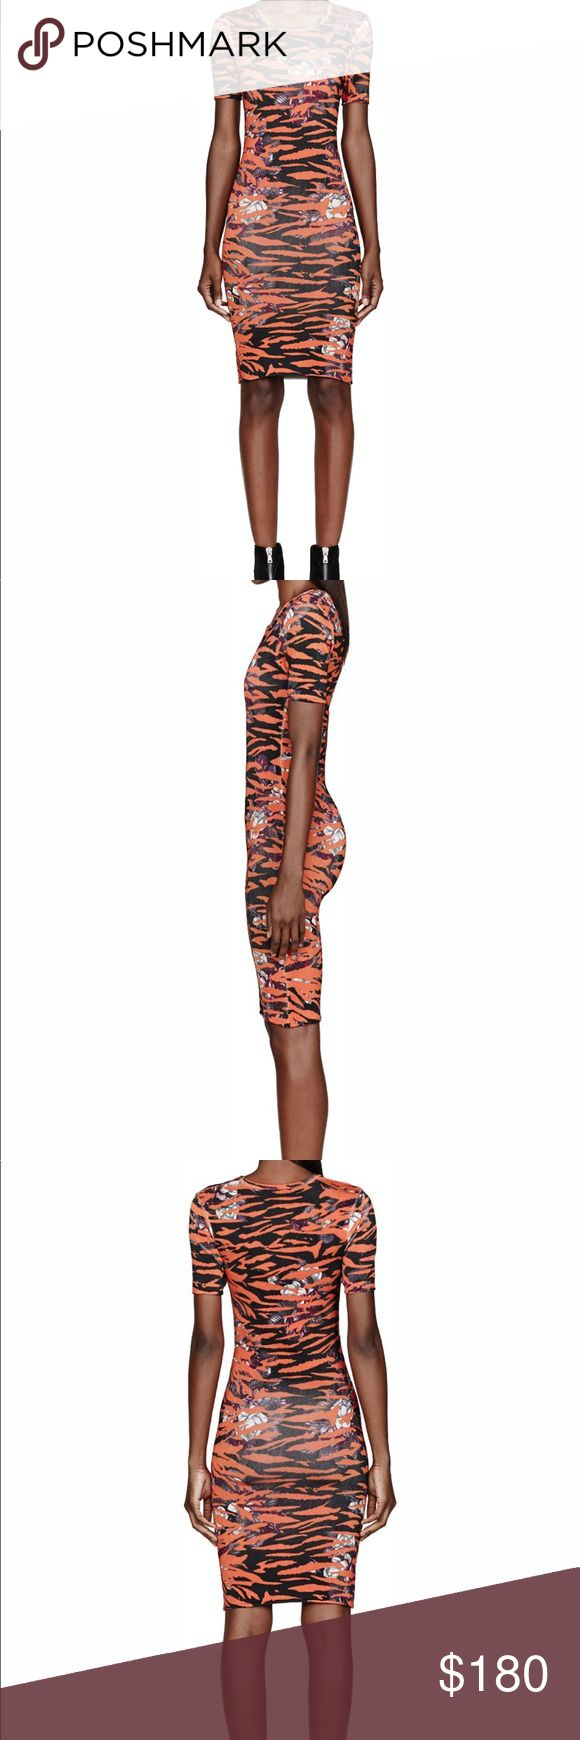 Alexander McQueen Orange Floral Tiger Print Dress This dress is part of the Mcq collection. It's fitted and has the perfect amount of stretch to it.  Accepting Offers! Alexander McQueen Dresses Midi